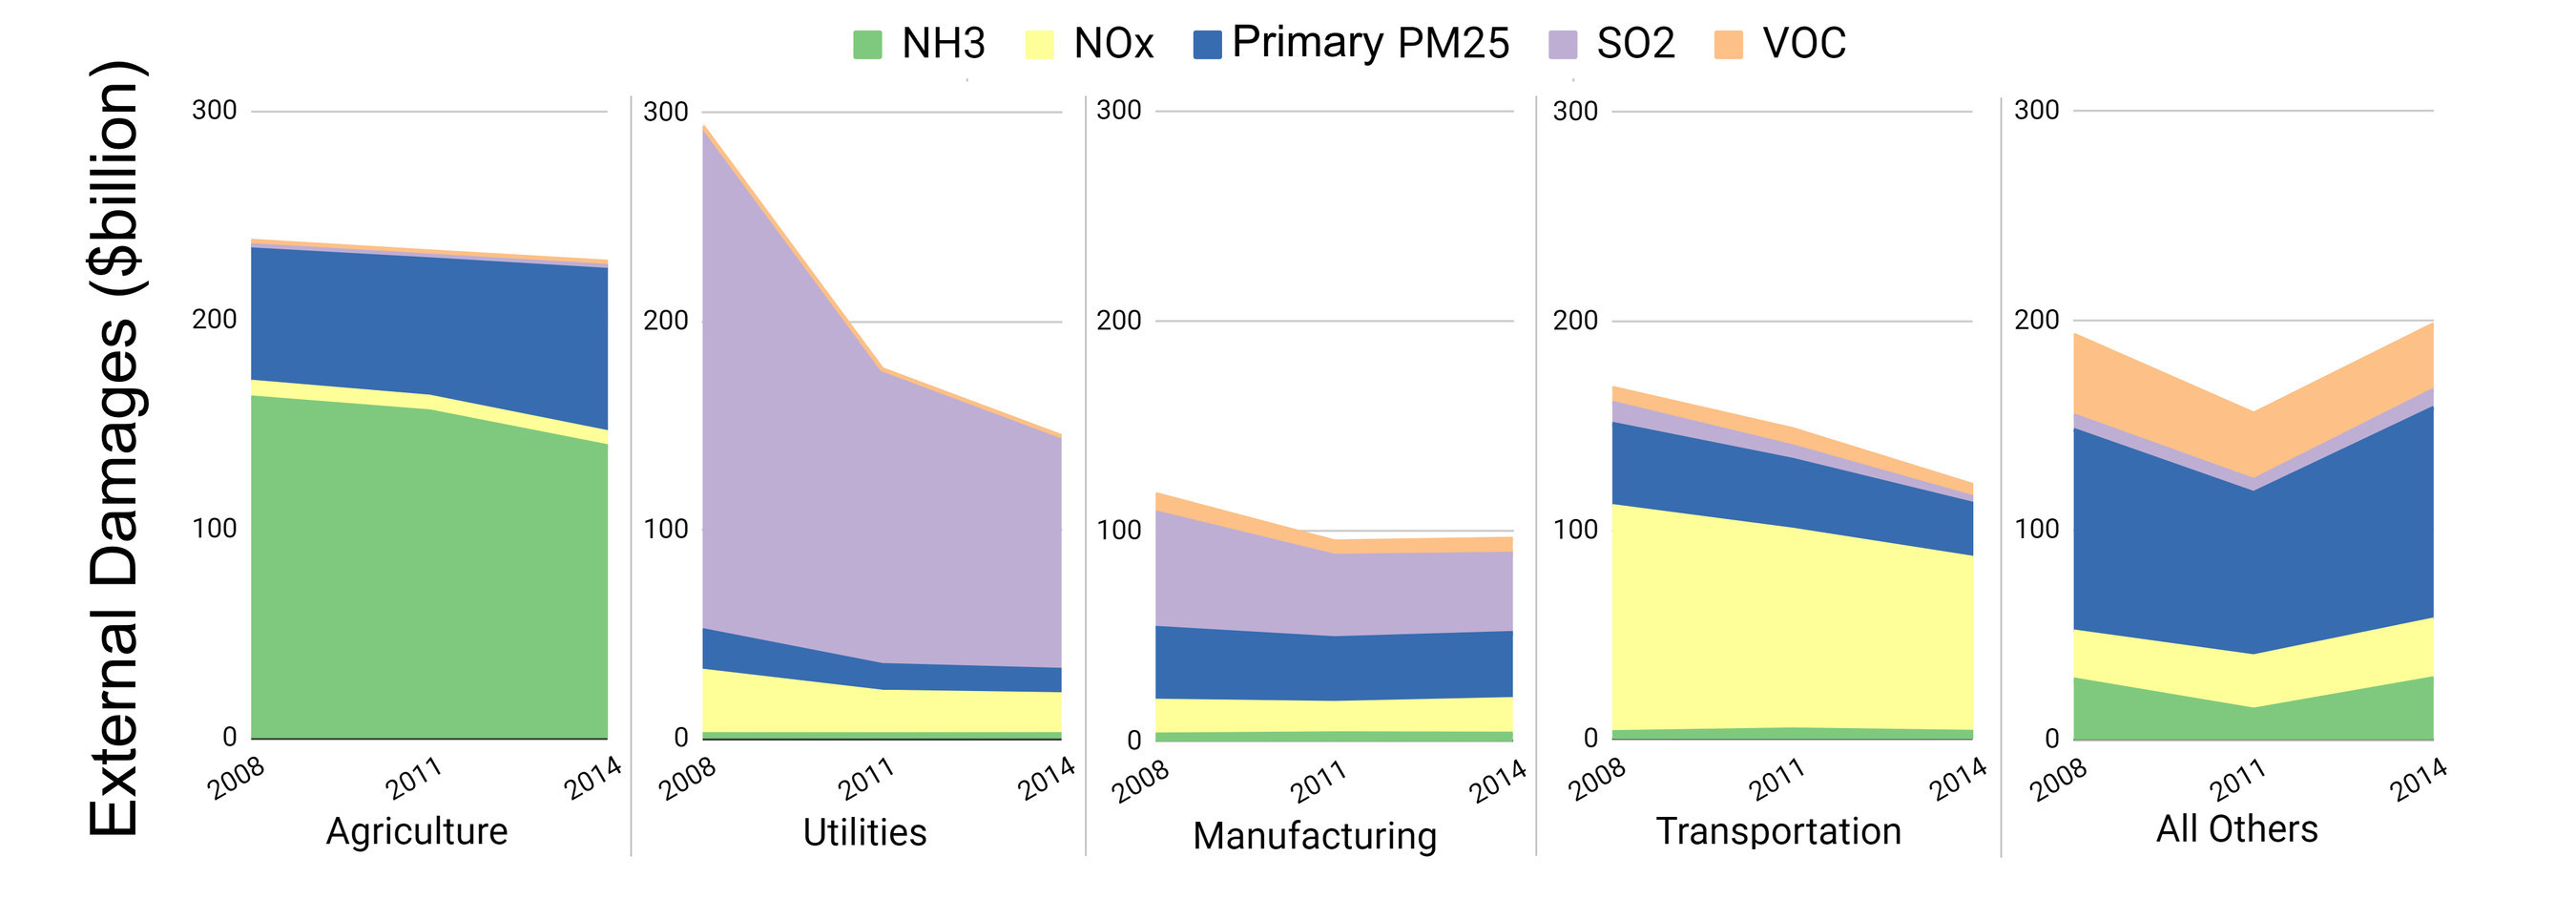 External damages from fine particulate matter air pollution by economic sector and precursor pollutant for 2008, 2011, and 2014 (in billions of dollars, 2018-adjusted).